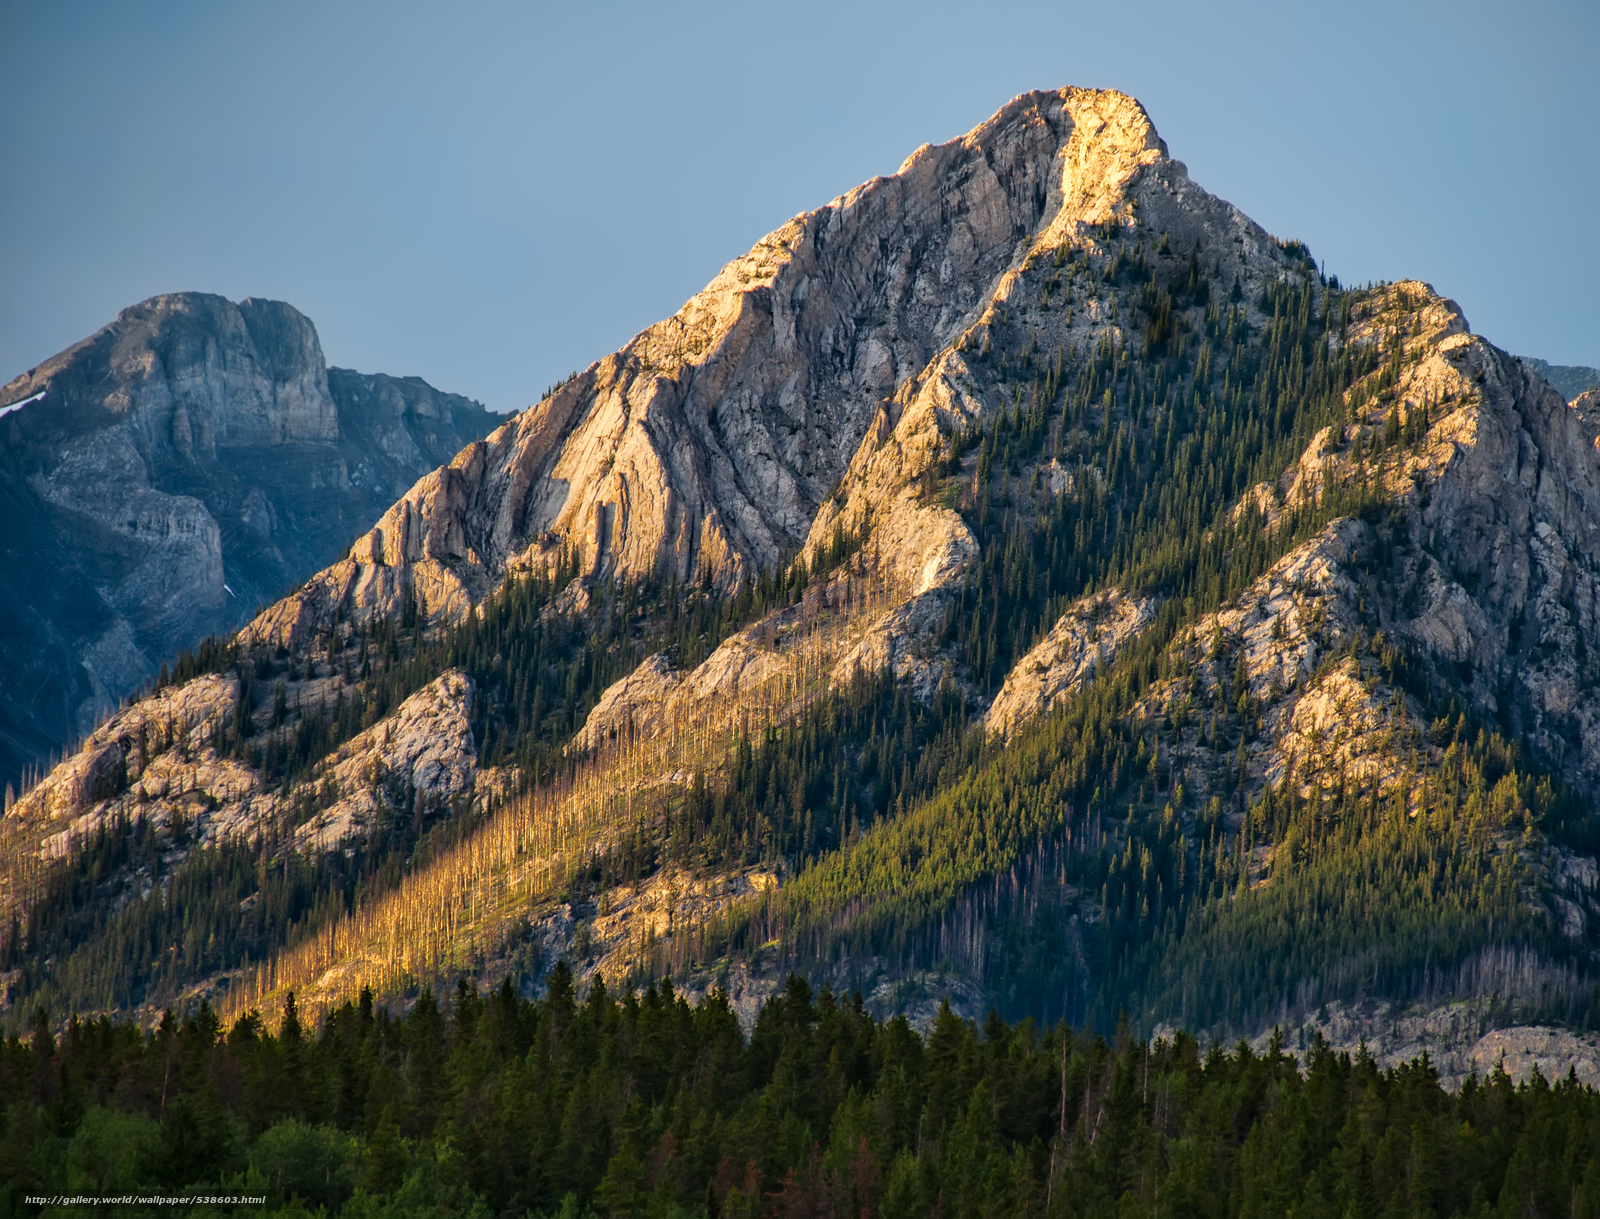 Http Gde Fon Com Download Yellow Mountain Top Two Jack Lakeside Campground B 538603 3737x2848